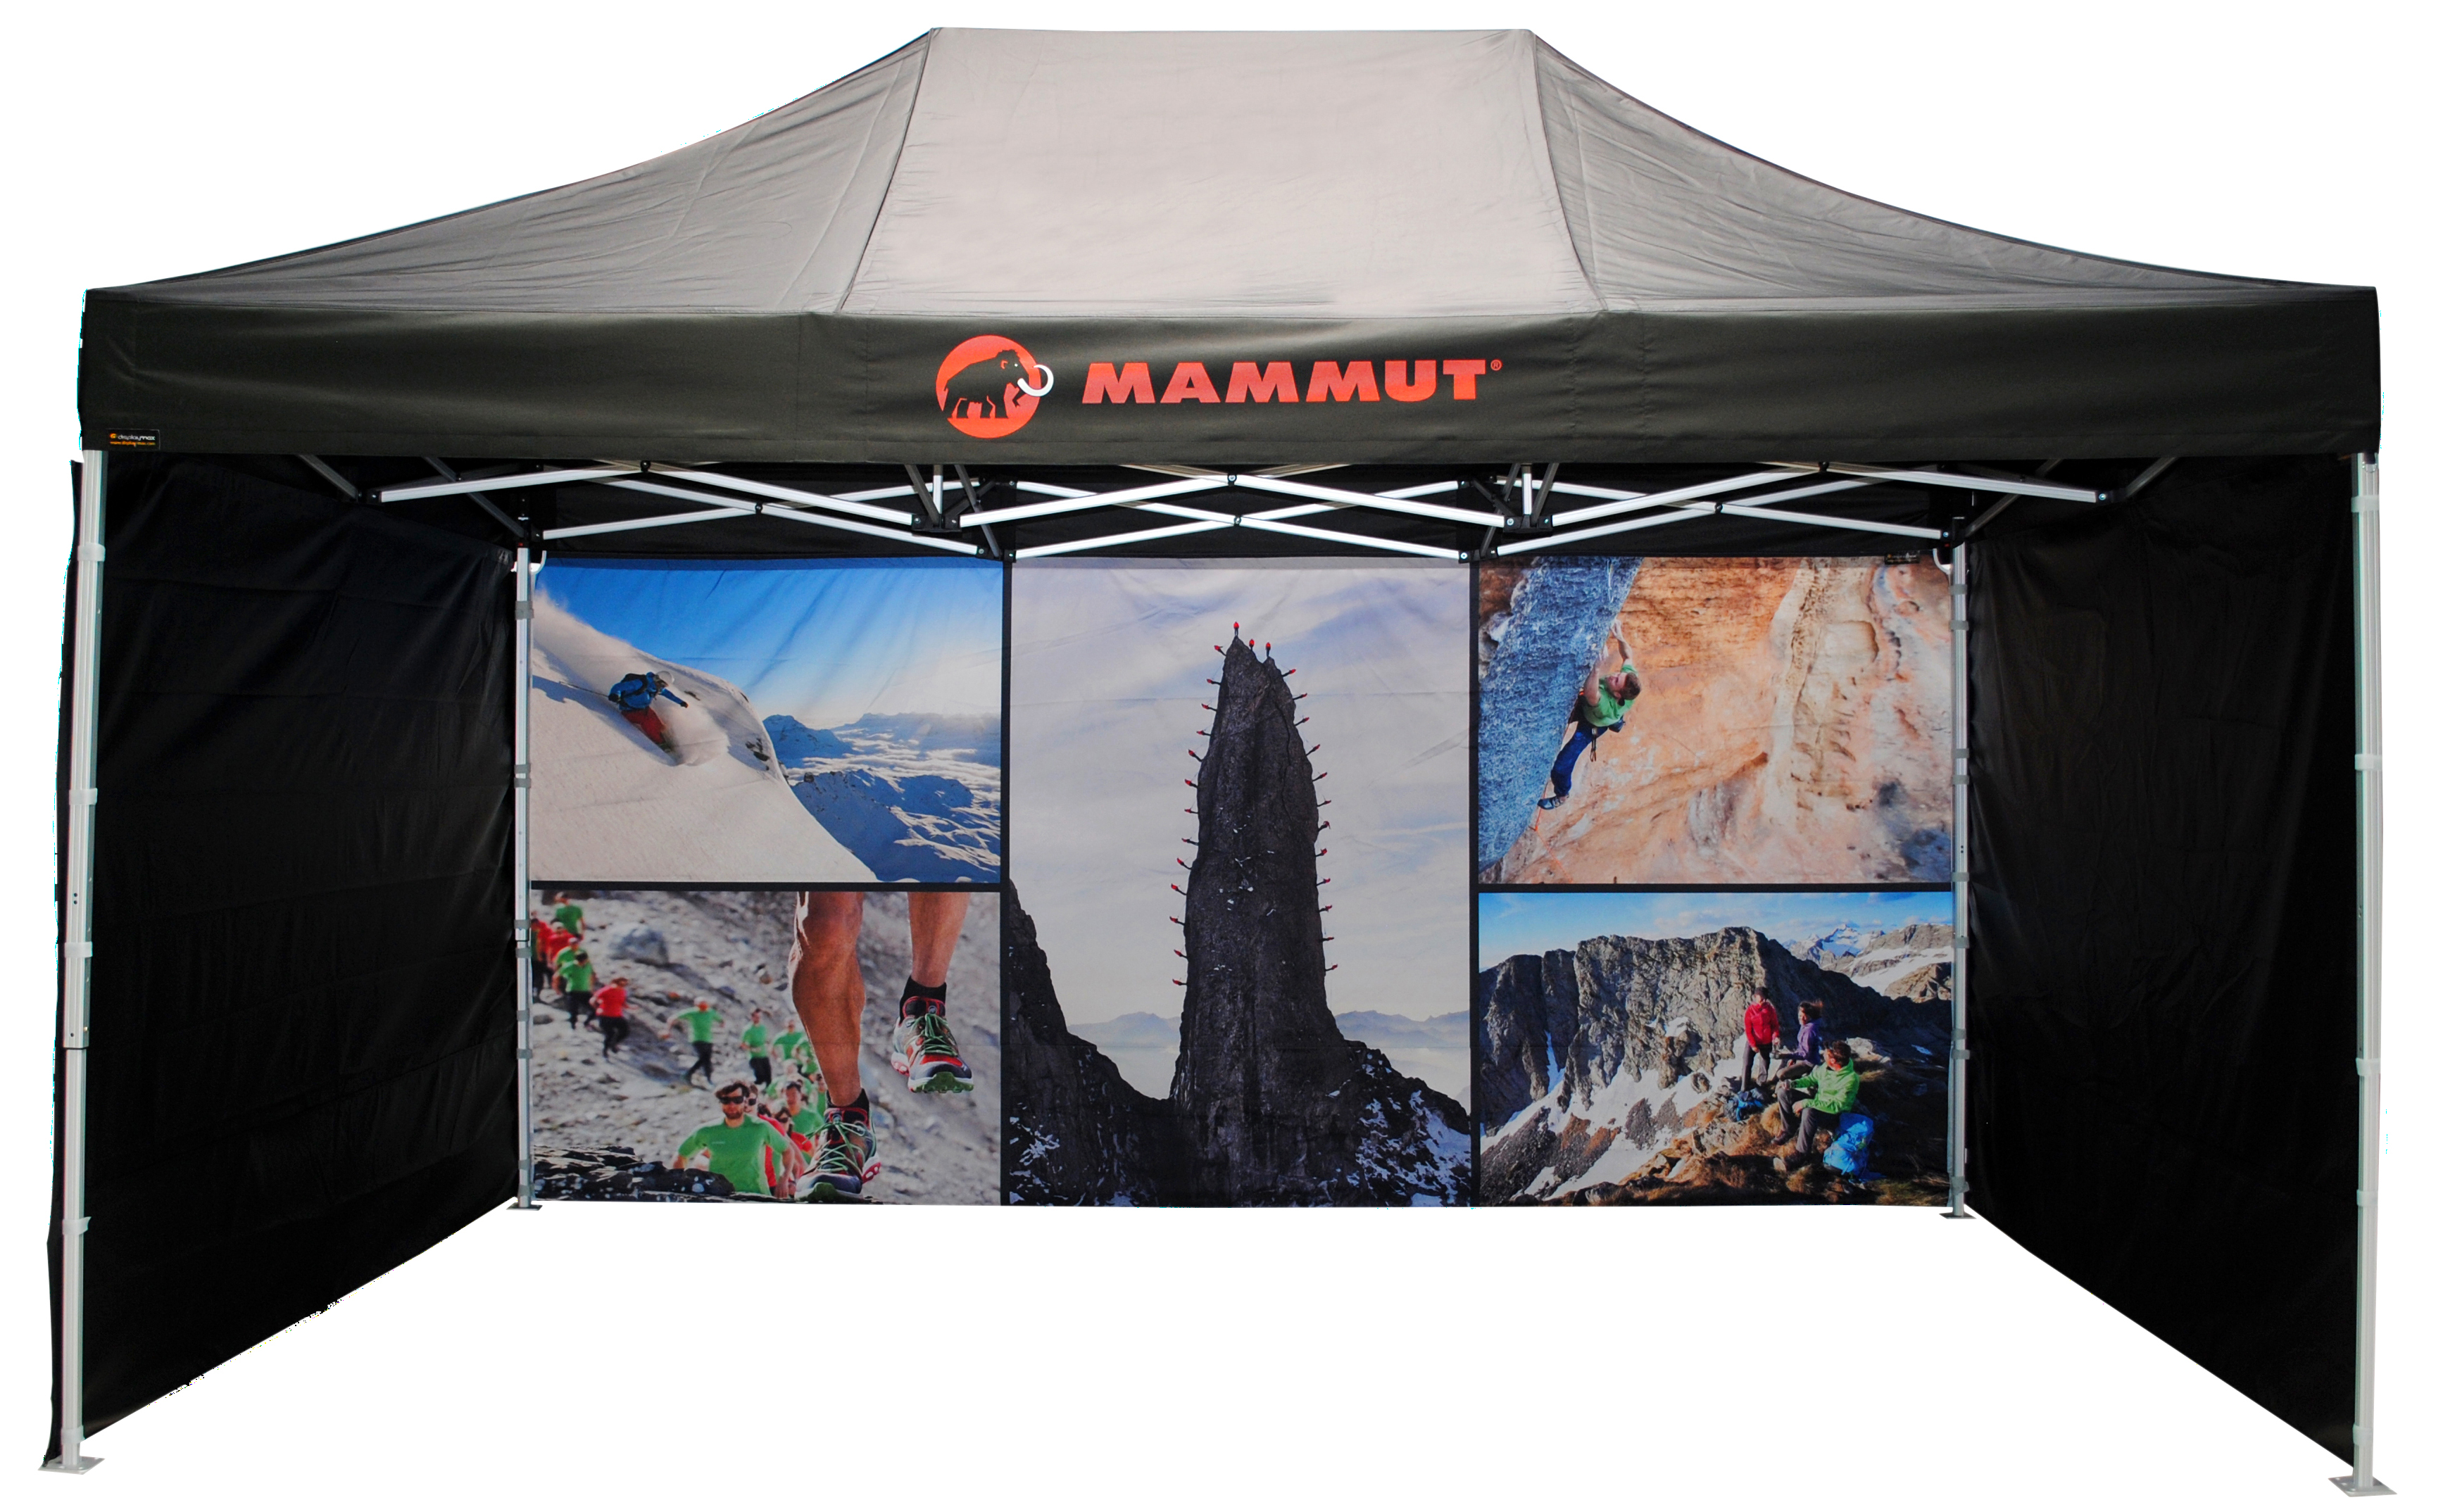 Display-Max | Pop-Up tent / Pavilion Classic 3x4.5 m the pop-up pavilion for advertising events and promotion c&aigns  sc 1 st  Display-Max & Display-Max | Pop-Up tent / Pavilion Classic 3x4.5 m the pop-up ...